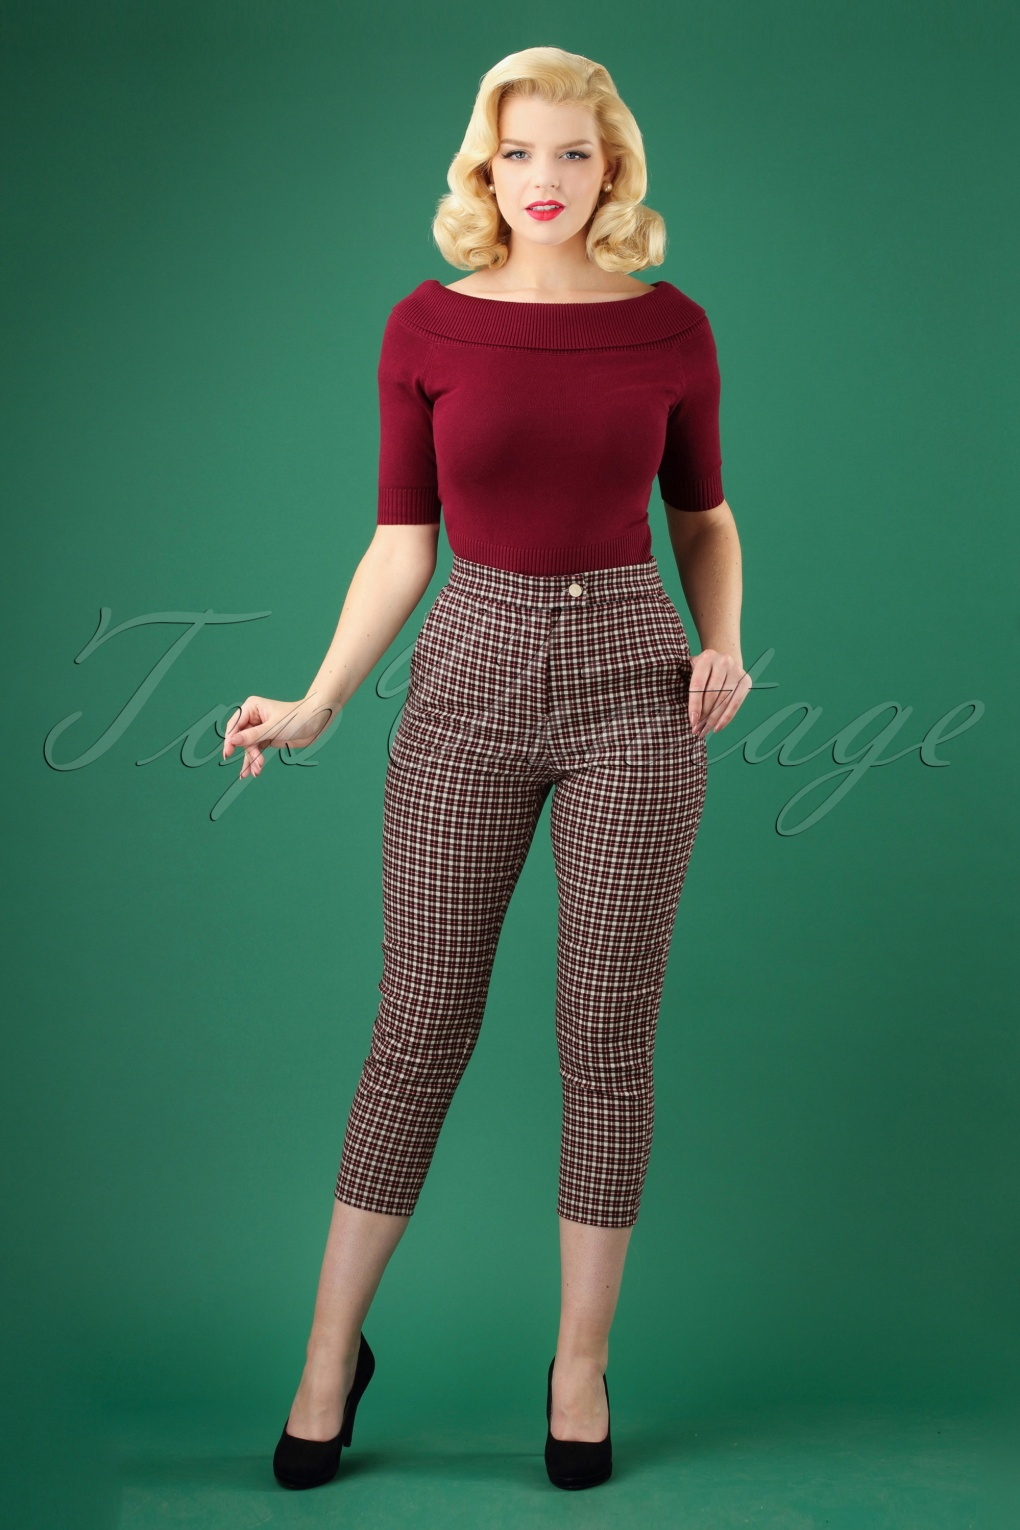 Vintage High Waisted Trousers, Sailor Pants, Jeans 50s Ken Check Trousers in Cream and Red £44.06 AT vintagedancer.com